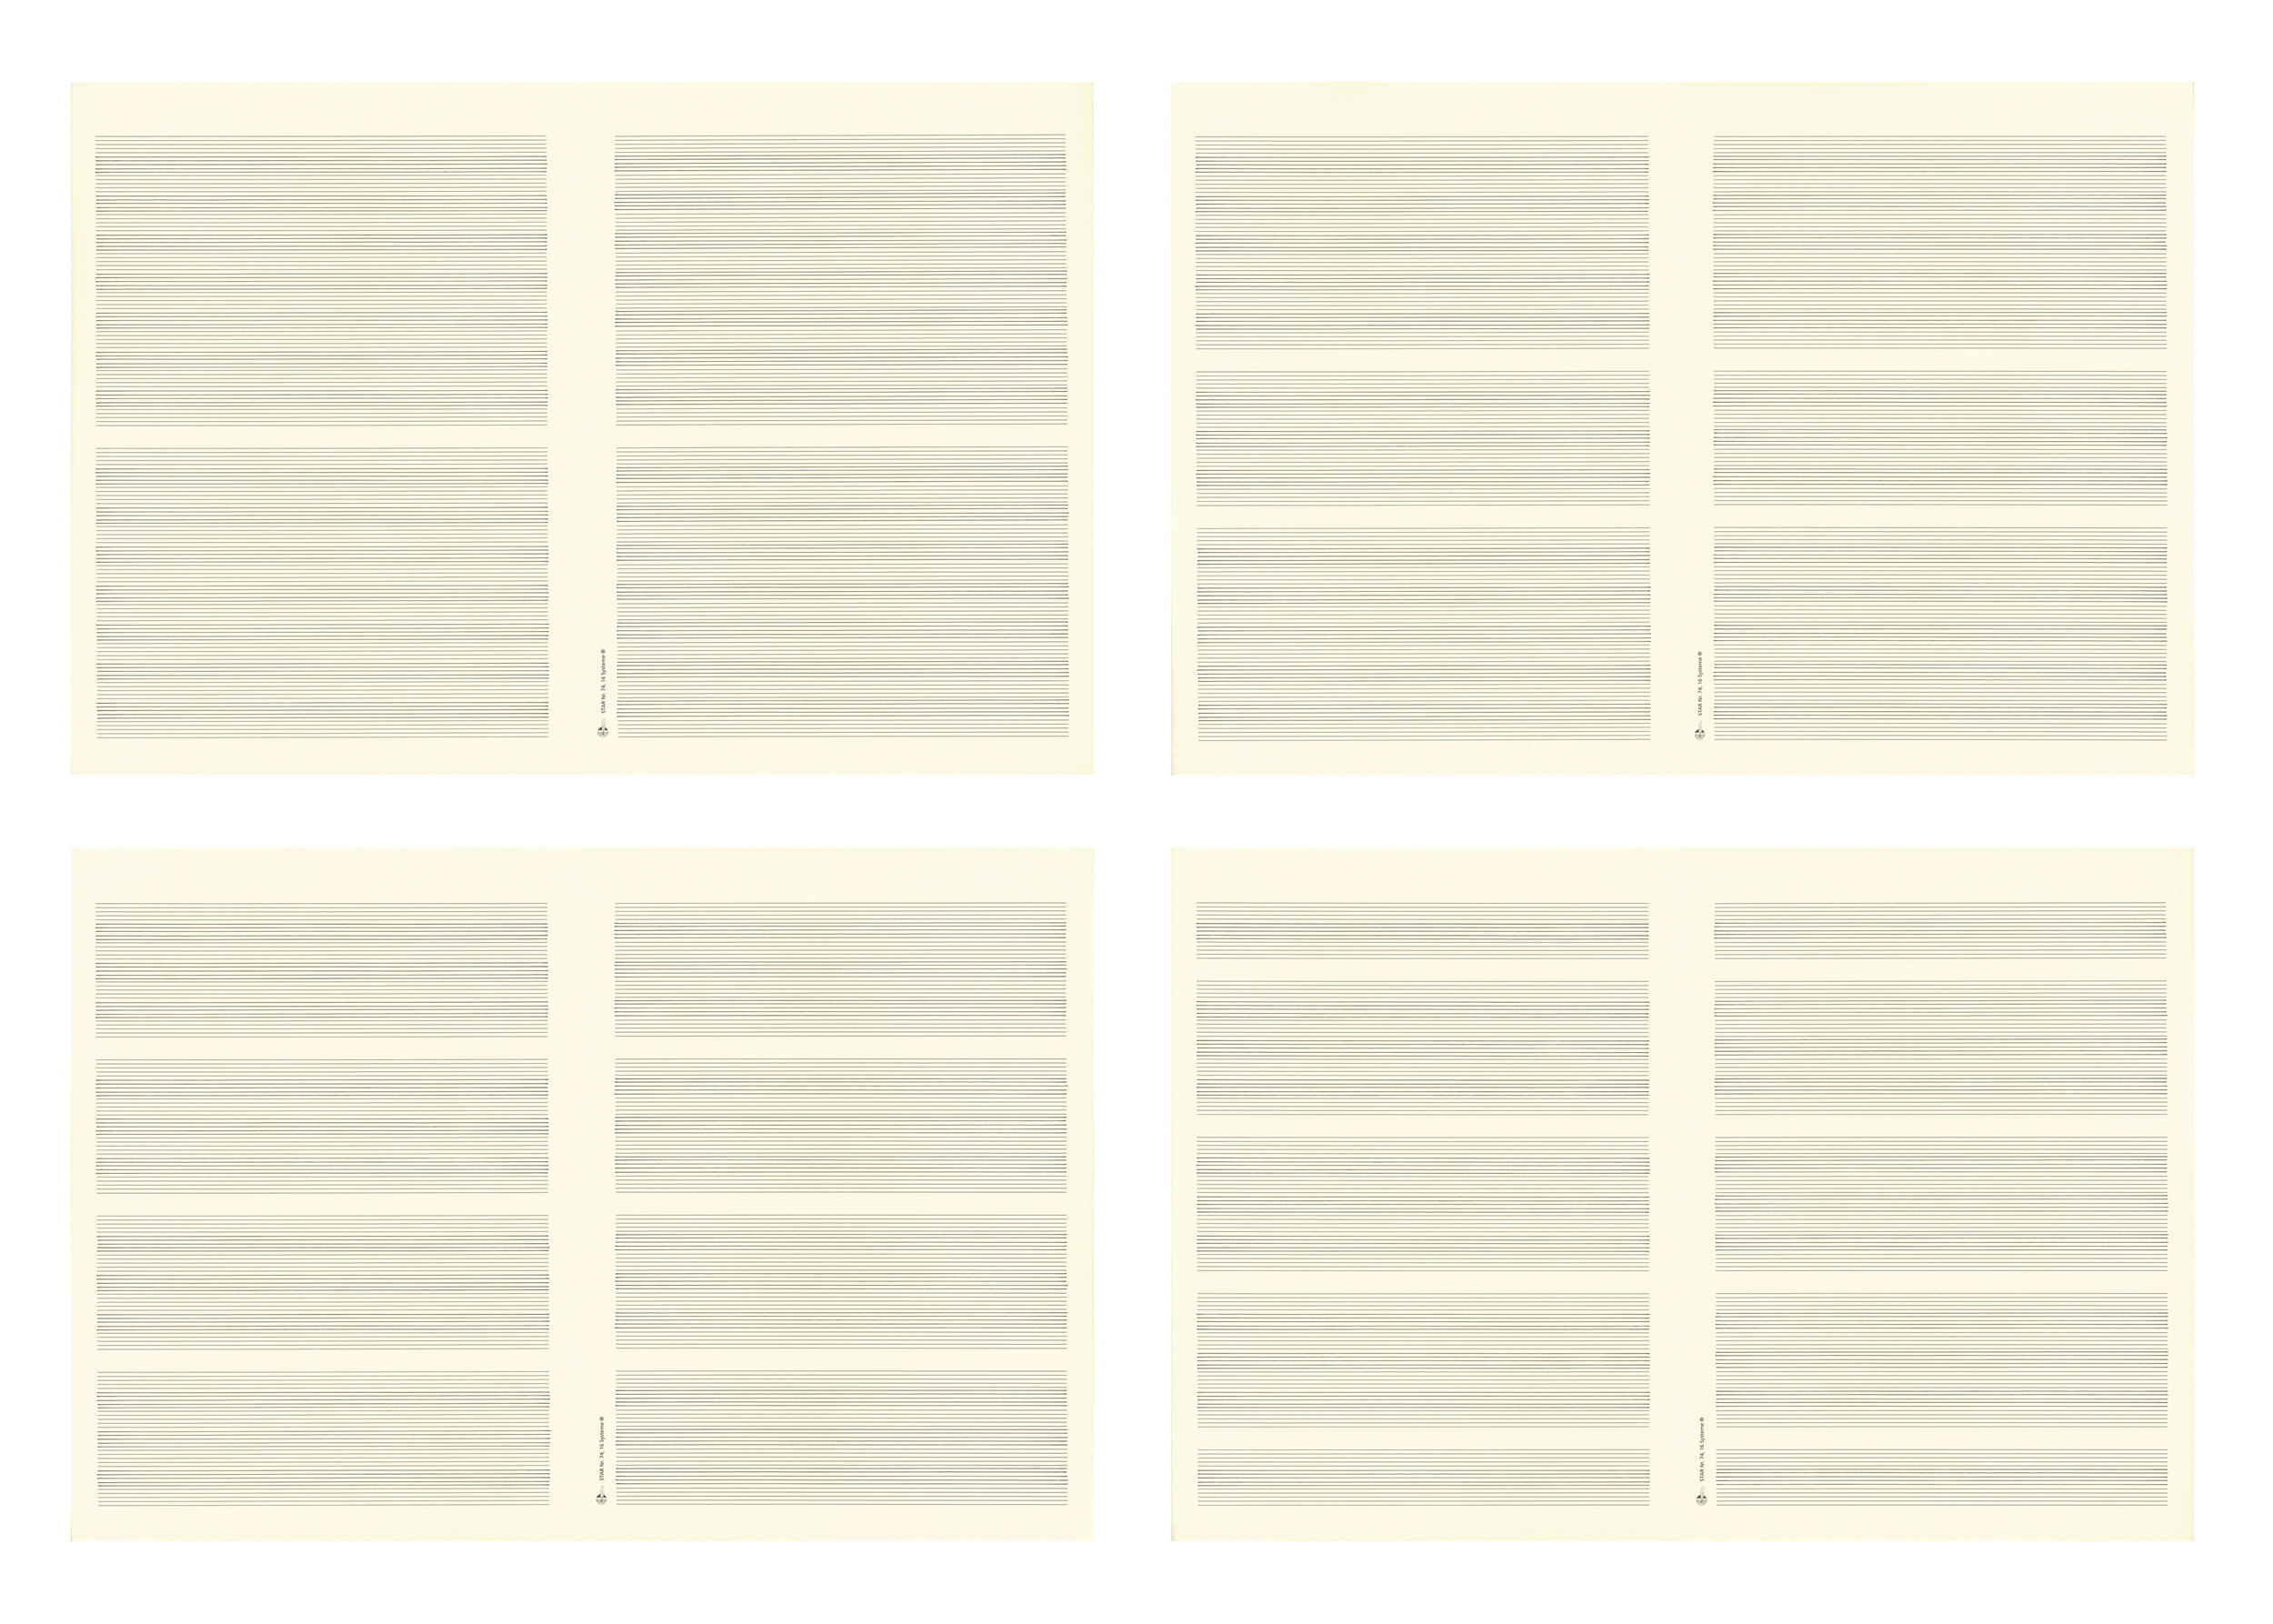 Song-Ming ANG  Music Manuscripts No. 11-14  2013 Ink on paper 32.4 x 48 cm (each) Set of 4